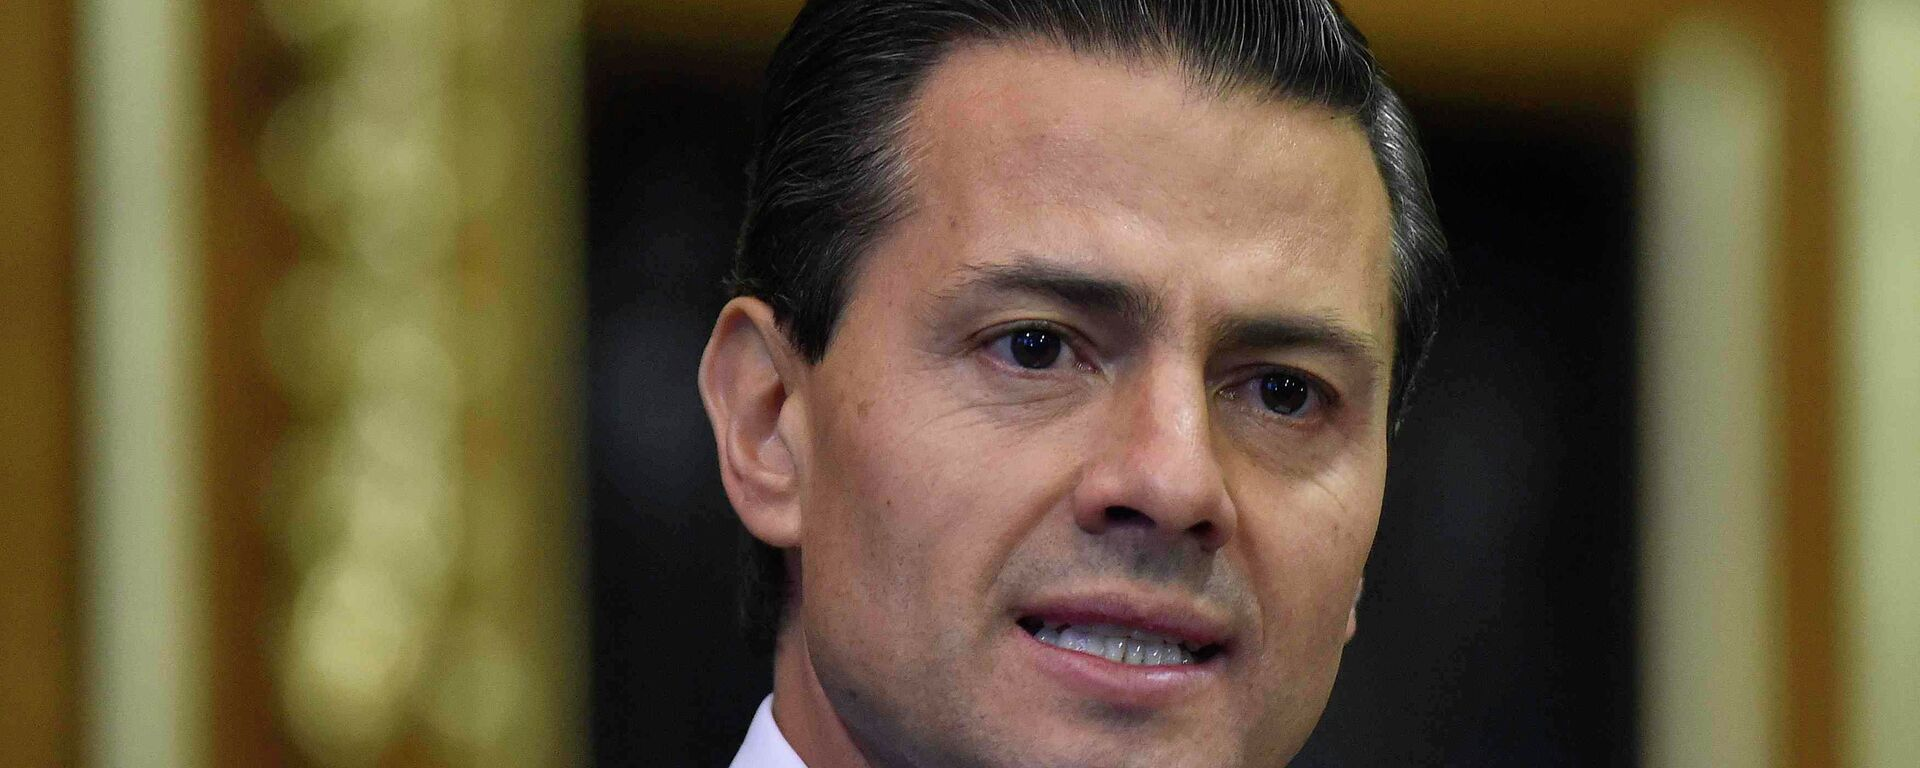 Mexico's President Enrique Pena Nieto delivers an address to members of the British All-Party Parliamentary Group at the Houses of Parliament in London, Tuesday, March 3, 2015 - Sputnik Mundo, 1920, 25.08.2021